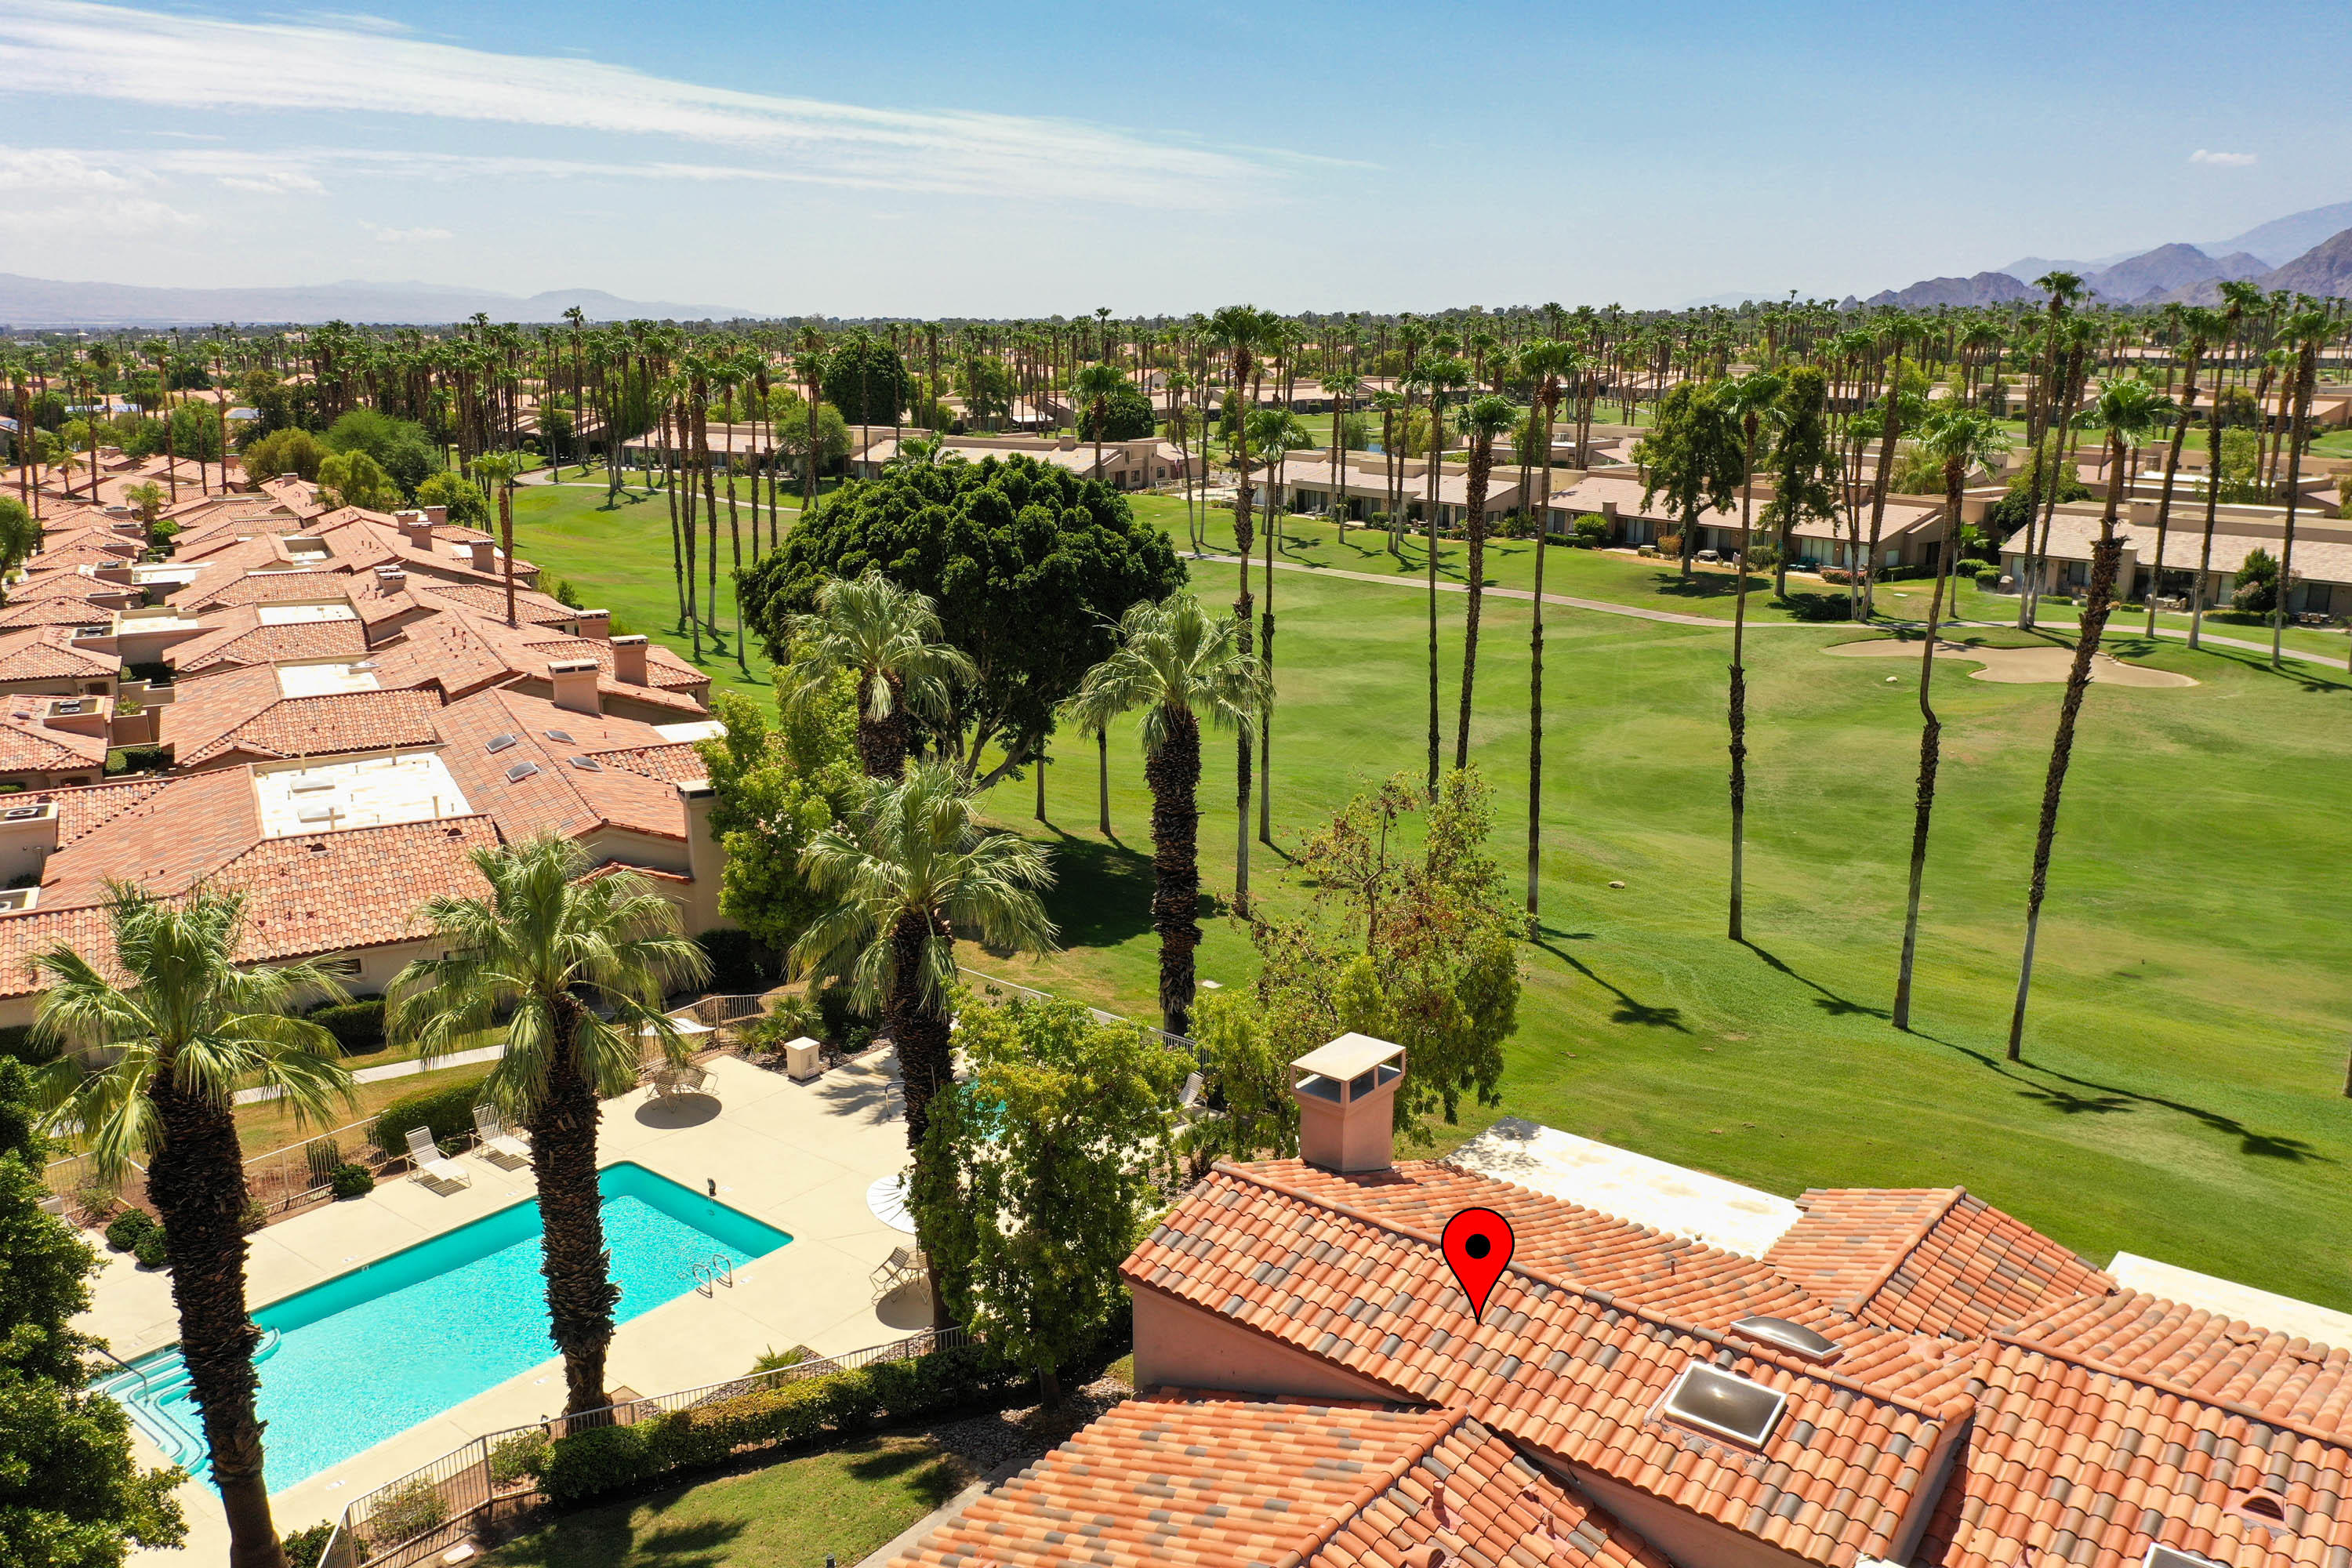 This incredible Palm Valley Country Club Condo has everything to please the most meticulous buyer who expects quality and loves perfection! The South facing patio has views of the 18th hole of the Ted Robinson Championship Golf Course, a lake and the beautiful Southern Mountains. This is the most sought after direction in the desert. There is warm winter sun present here all season. Spectacular mountain sunsets and lingering twilight skies are absolutly gorgeous. This home offers 2,489 SF (EST.) of spacious and gracious living. Soaring vaulted ceilings, tile flooring everywhere and three bedrooms, all with private baths plus a guest powder room. The stunning kitchen has granite countertops and stainless steel appliances all framed by rich, dark cabinets and a stool height island that is ideal for entertaining. The huge, open great room has a cozy gas fireplace for those cool winter evenings and great views to the golf course and distant mountains.  Additionally, it has its own private entry courtyard and a two car attached garage. This single level home is just a few steps to an amazing Clubhouse that features a fitness center, tennis, a gigantic resort style swimming pool and spa, the pro shop and so much more!